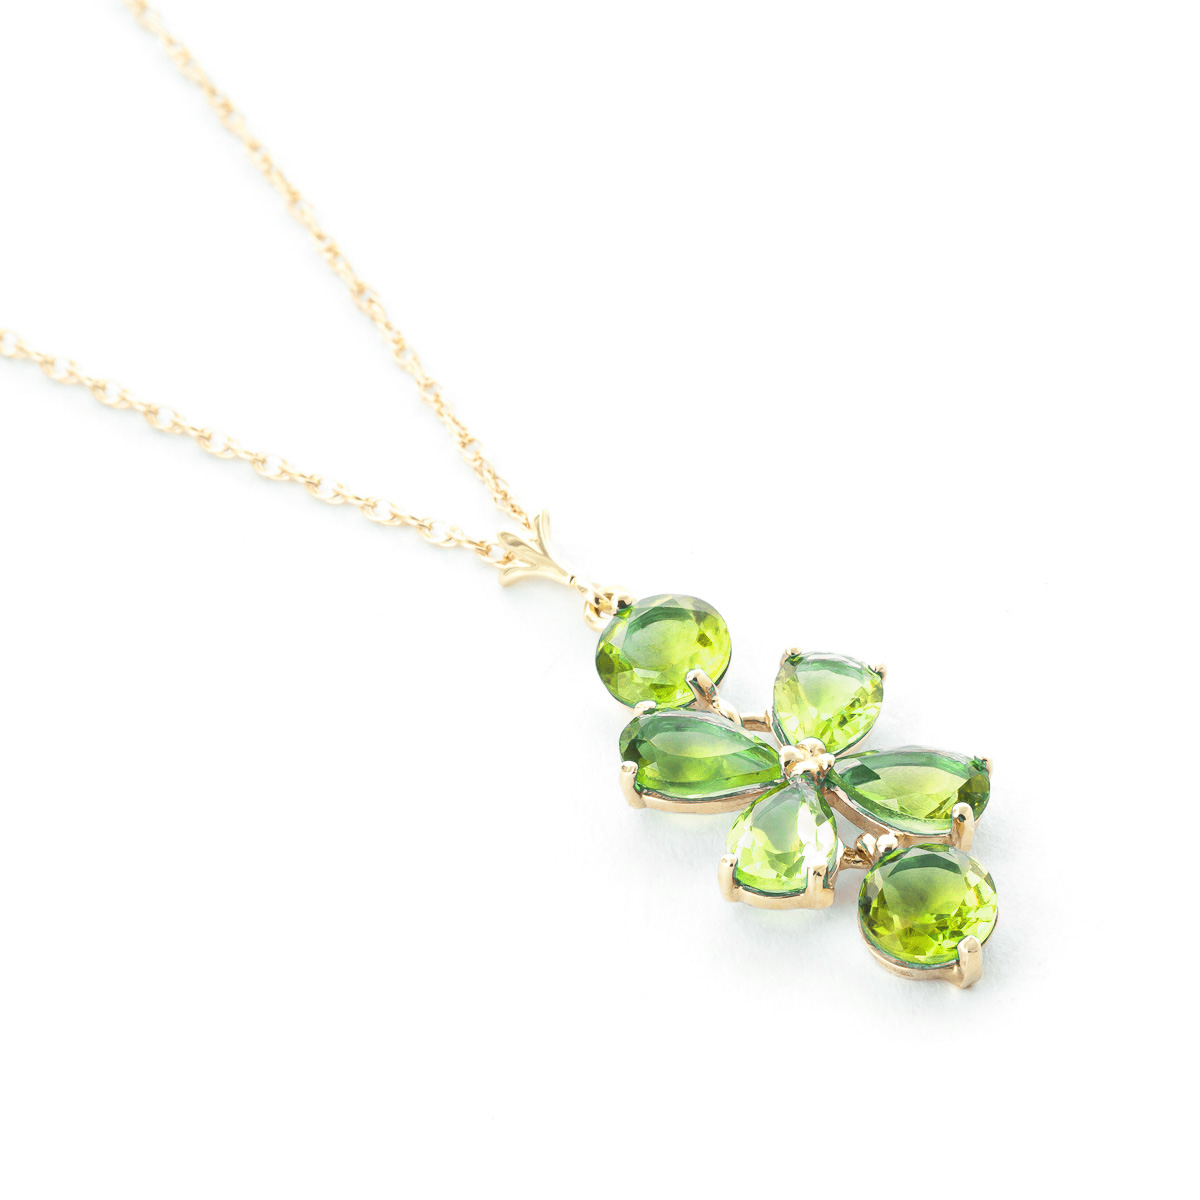 Peridot Blossom Pendant Necklace 3.15ctw in 9ct Gold